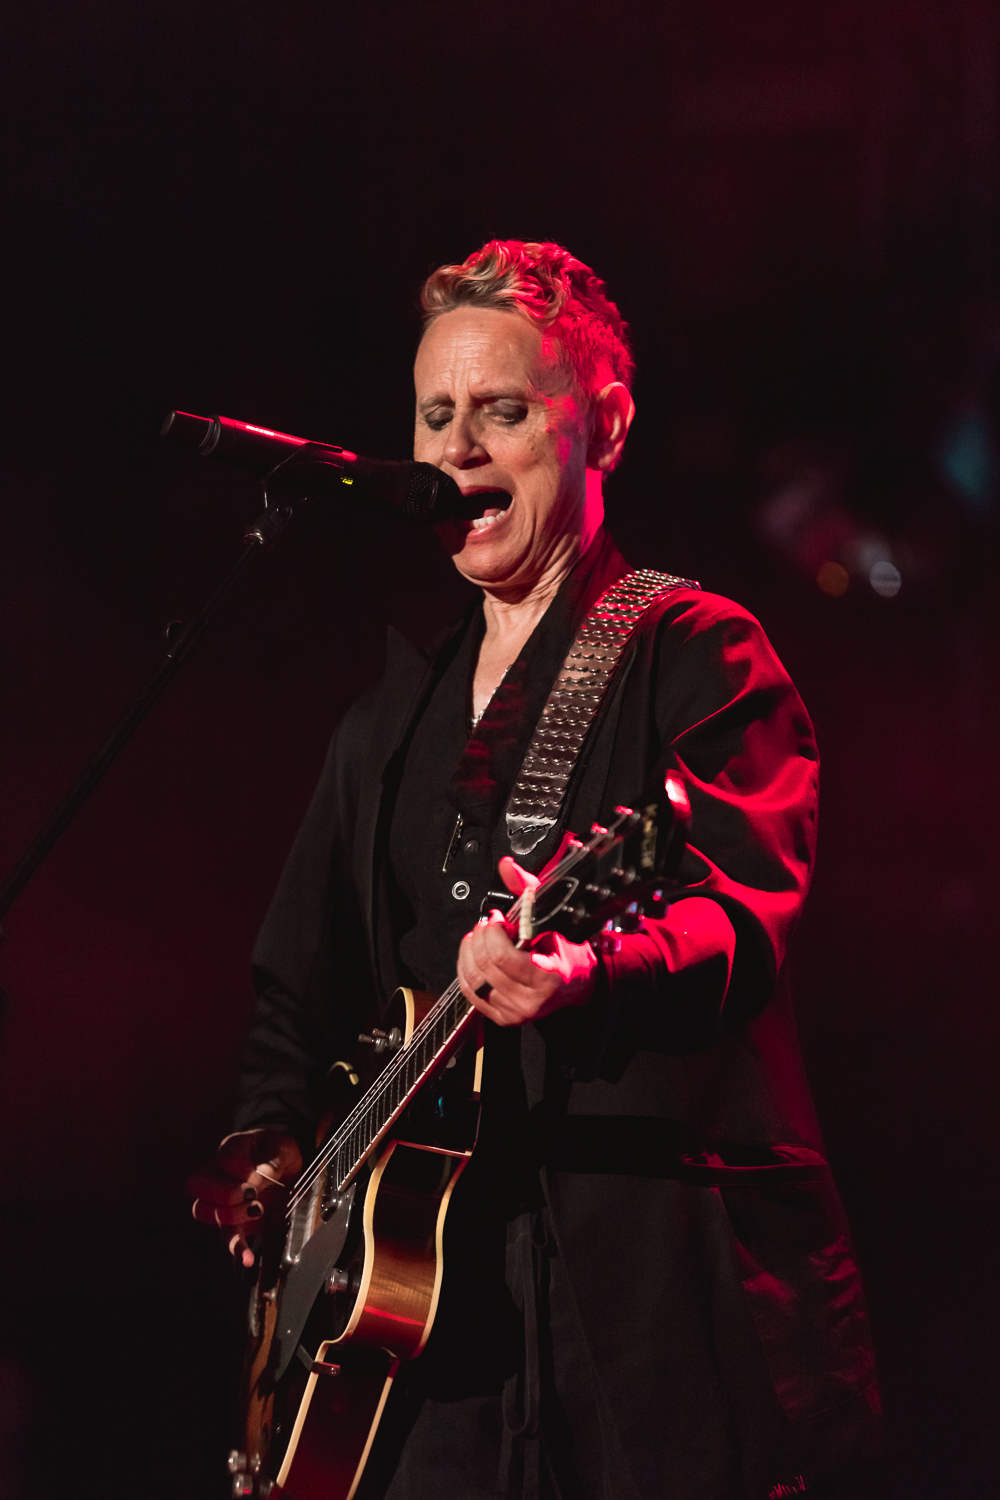 Martin Gore playing guitar for Depeche Mode in Salt Lake CIty. Photo: Lmsorenson.net